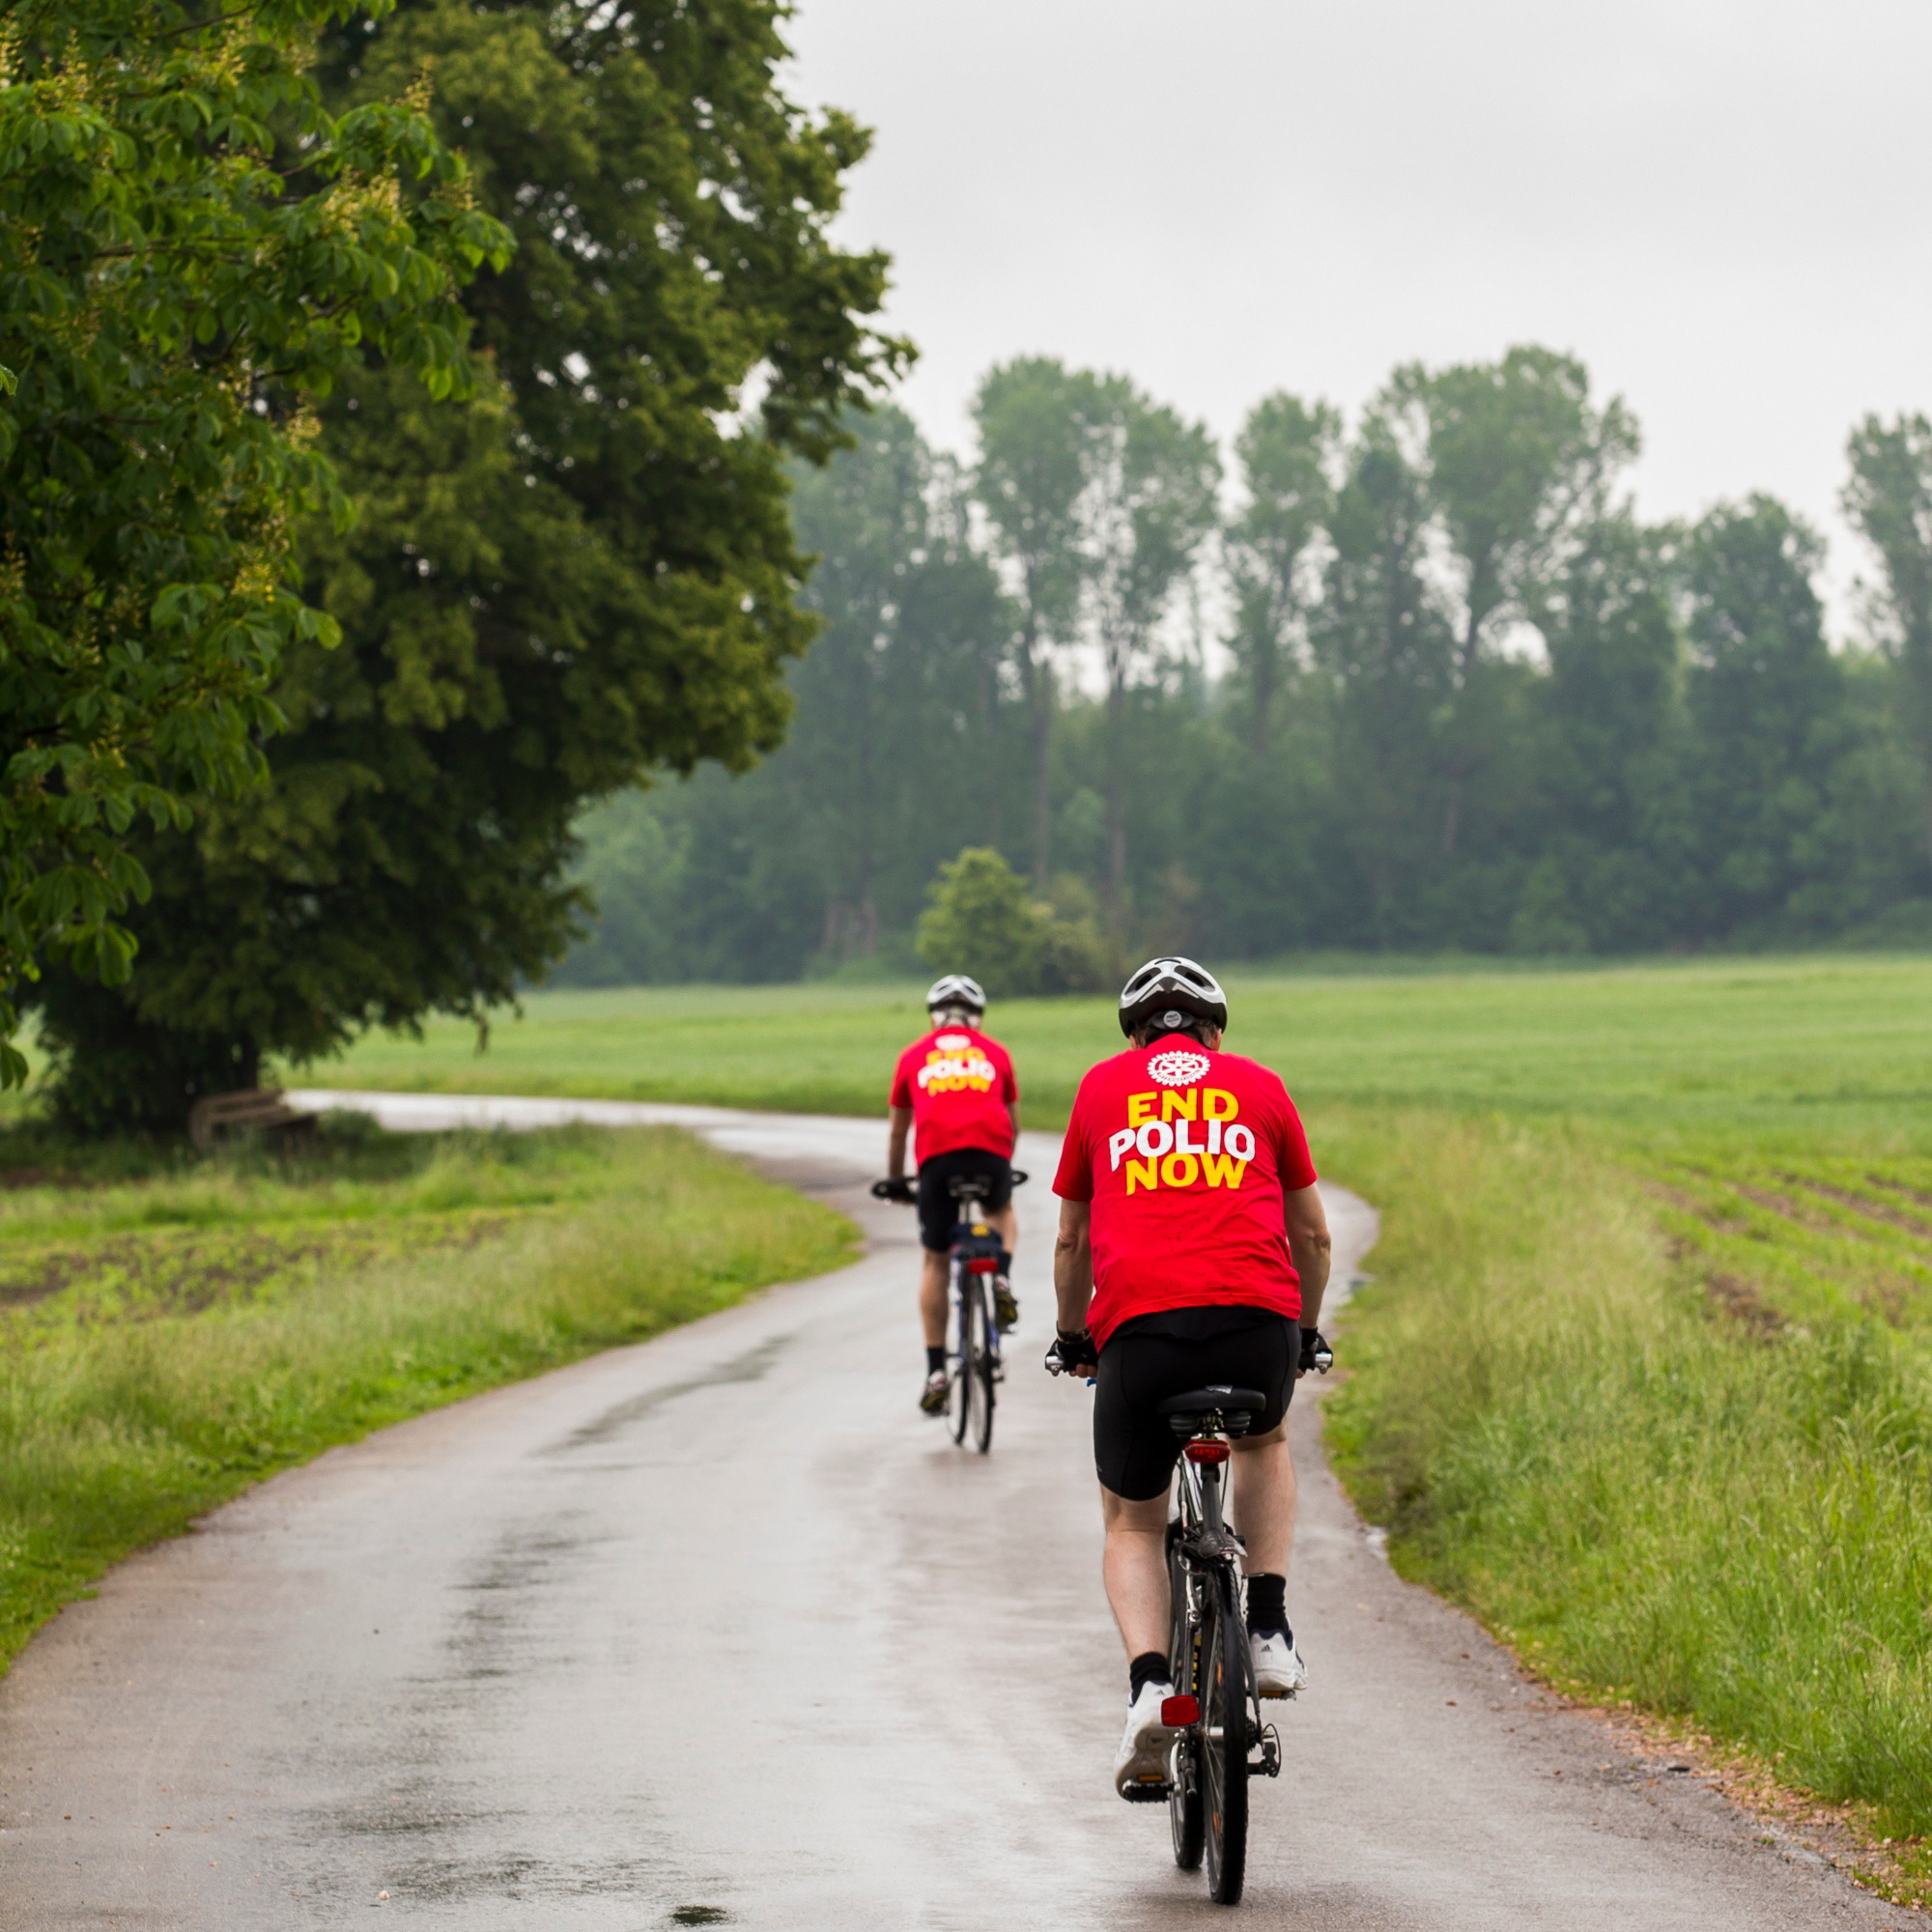 About - Find out about the programs supported by the Bike Tour